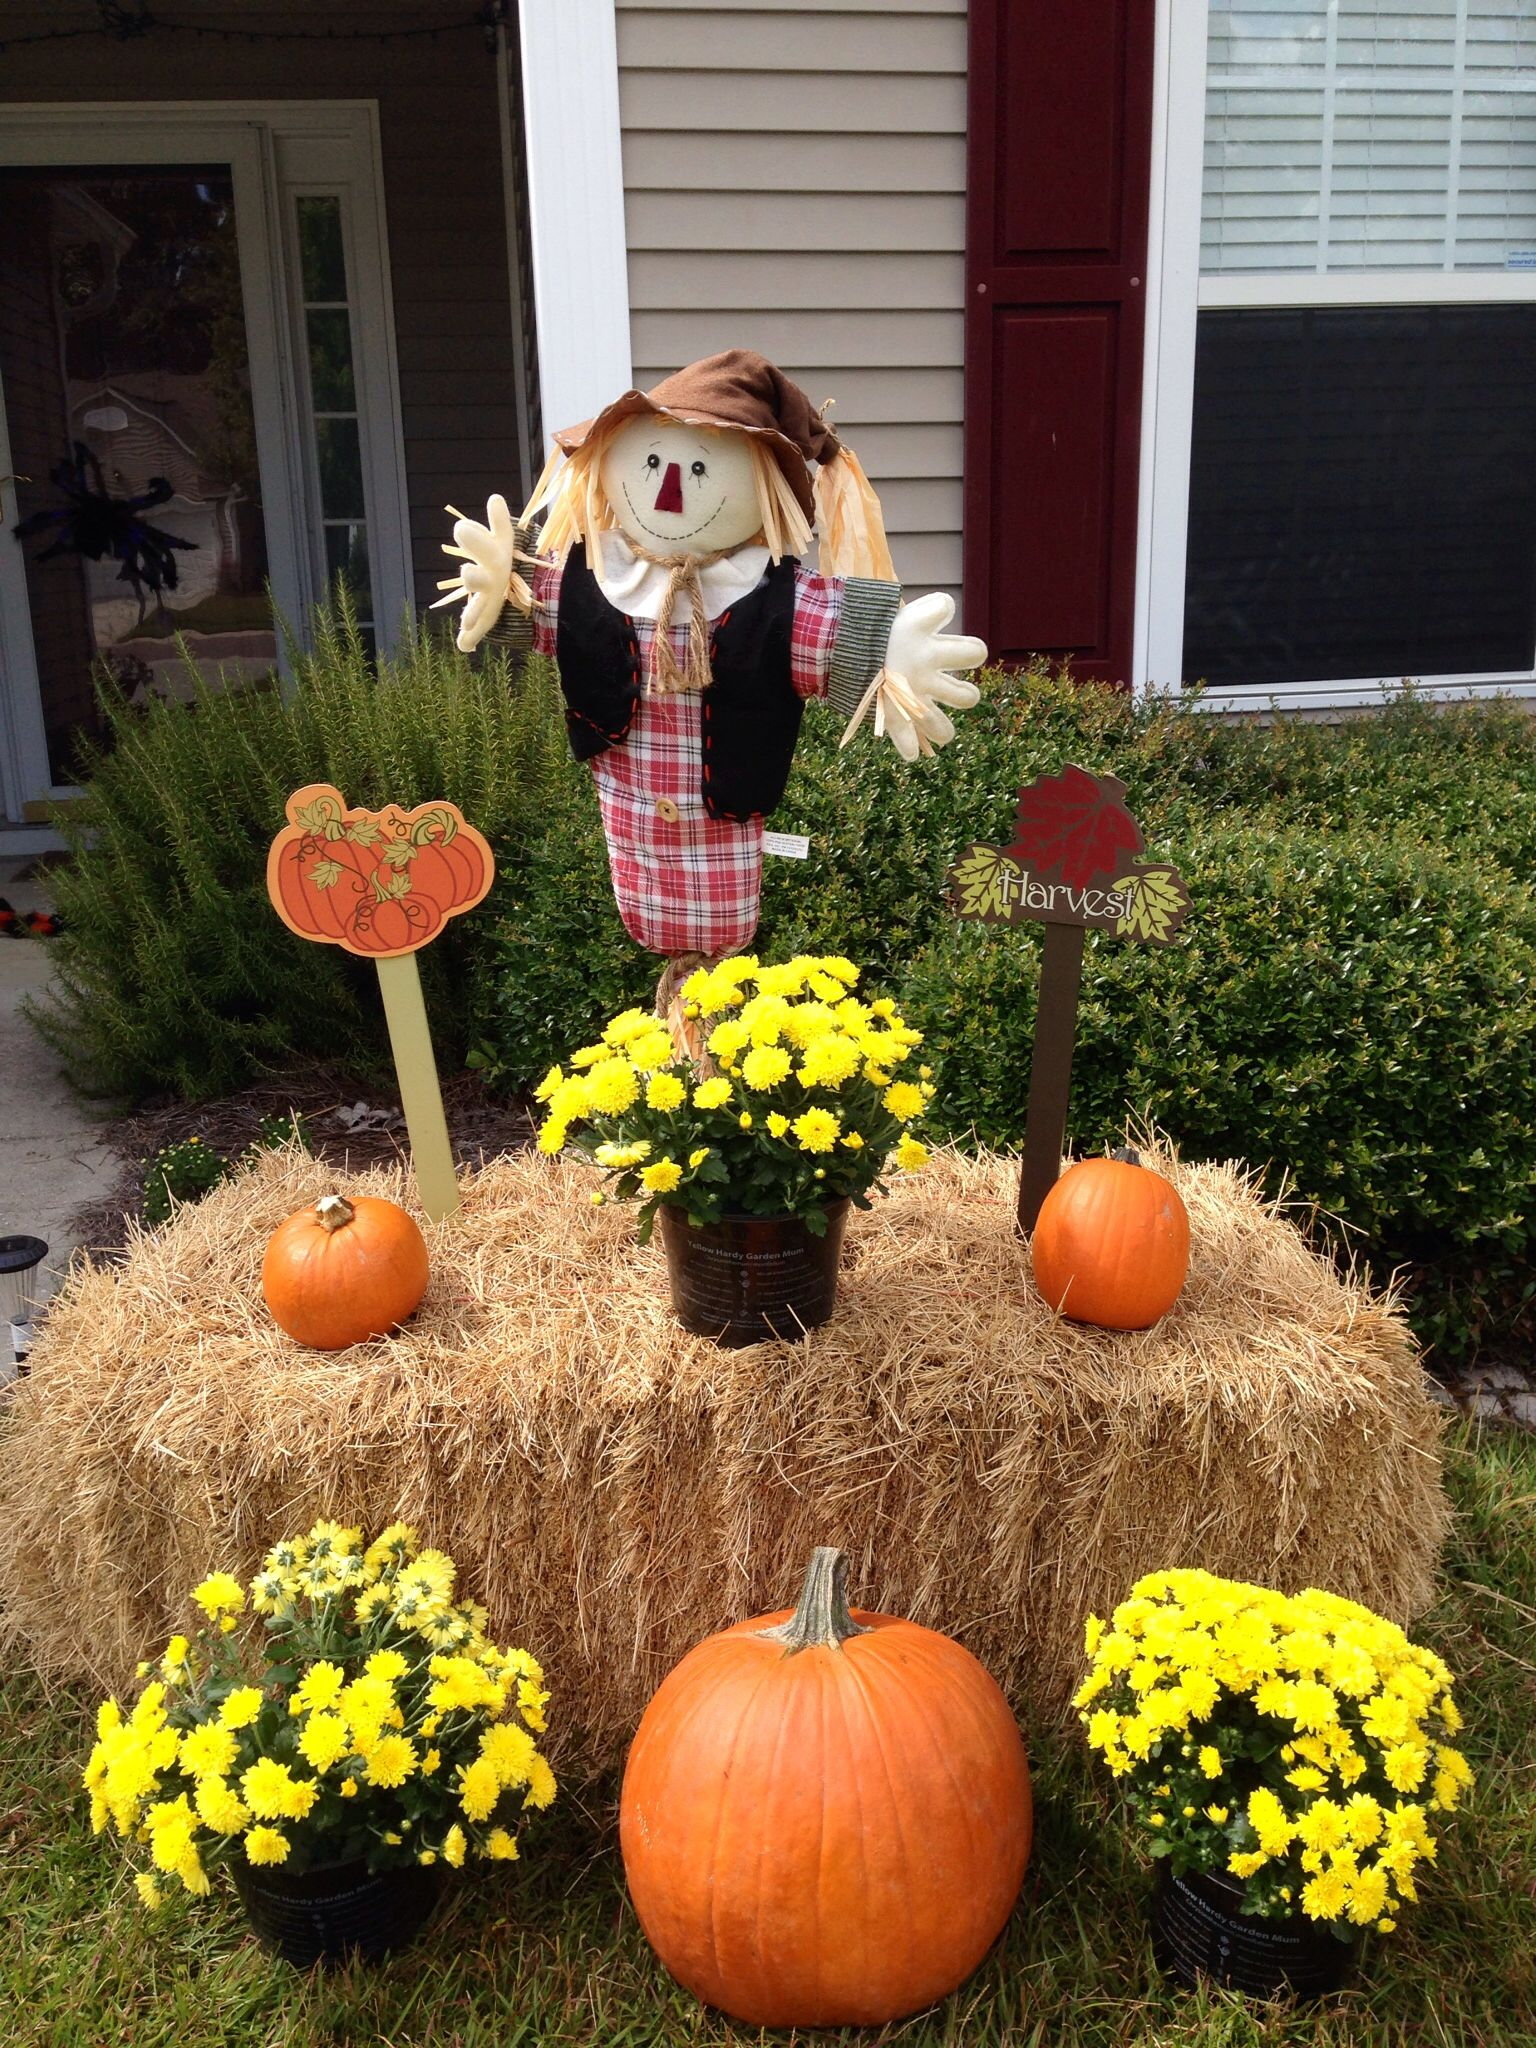 My Fall Yard Decor Yellow Mums Pumpkins Hay Bale And A Cute Little Scarecrow